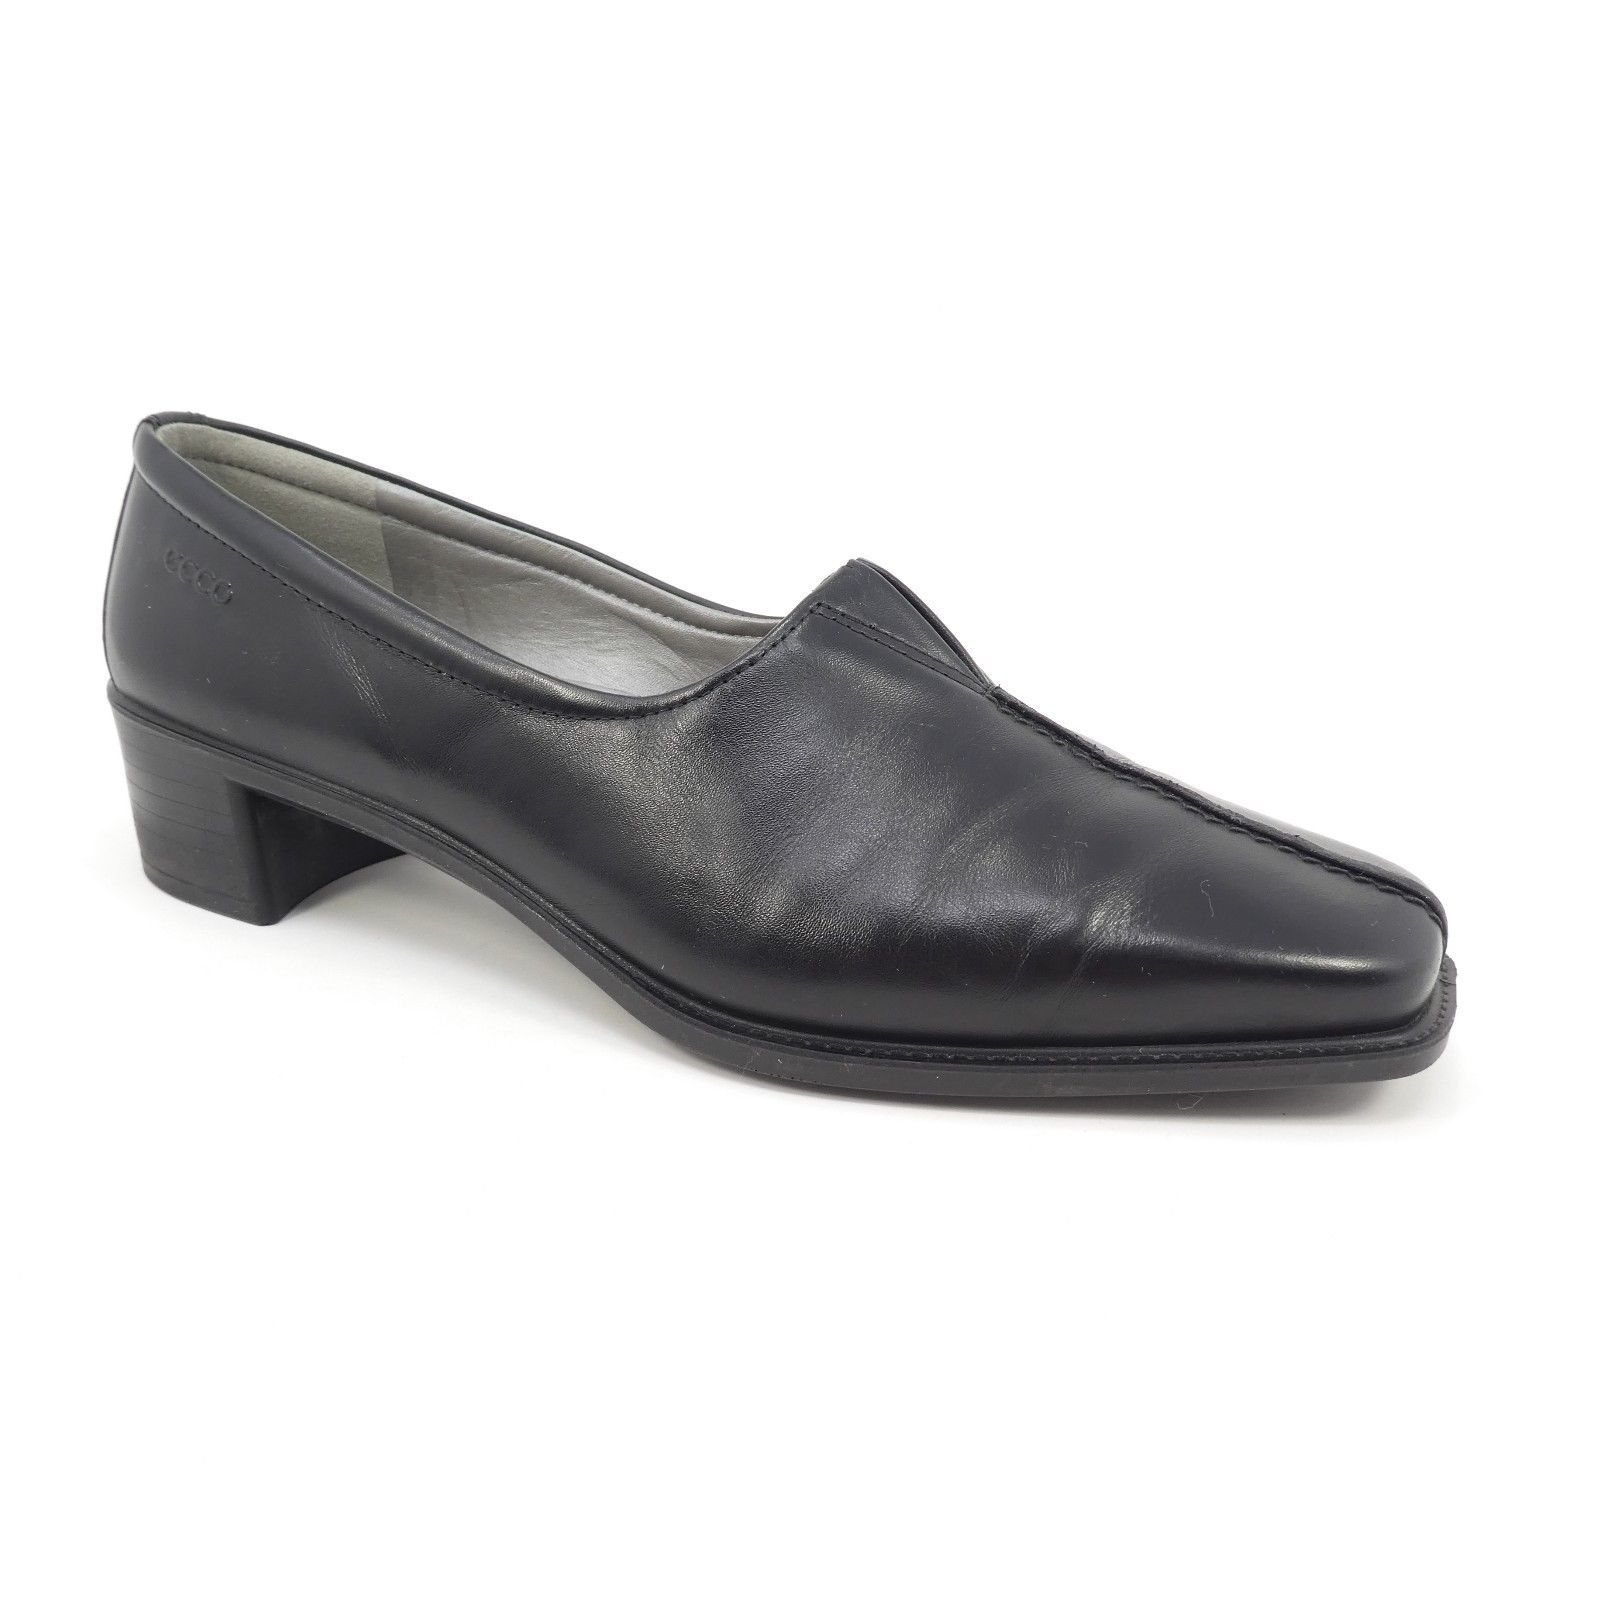 Ecco Womens Heeled Square Plain Toe Loafers Sz 38 Dark Brown Casual Career Shoes